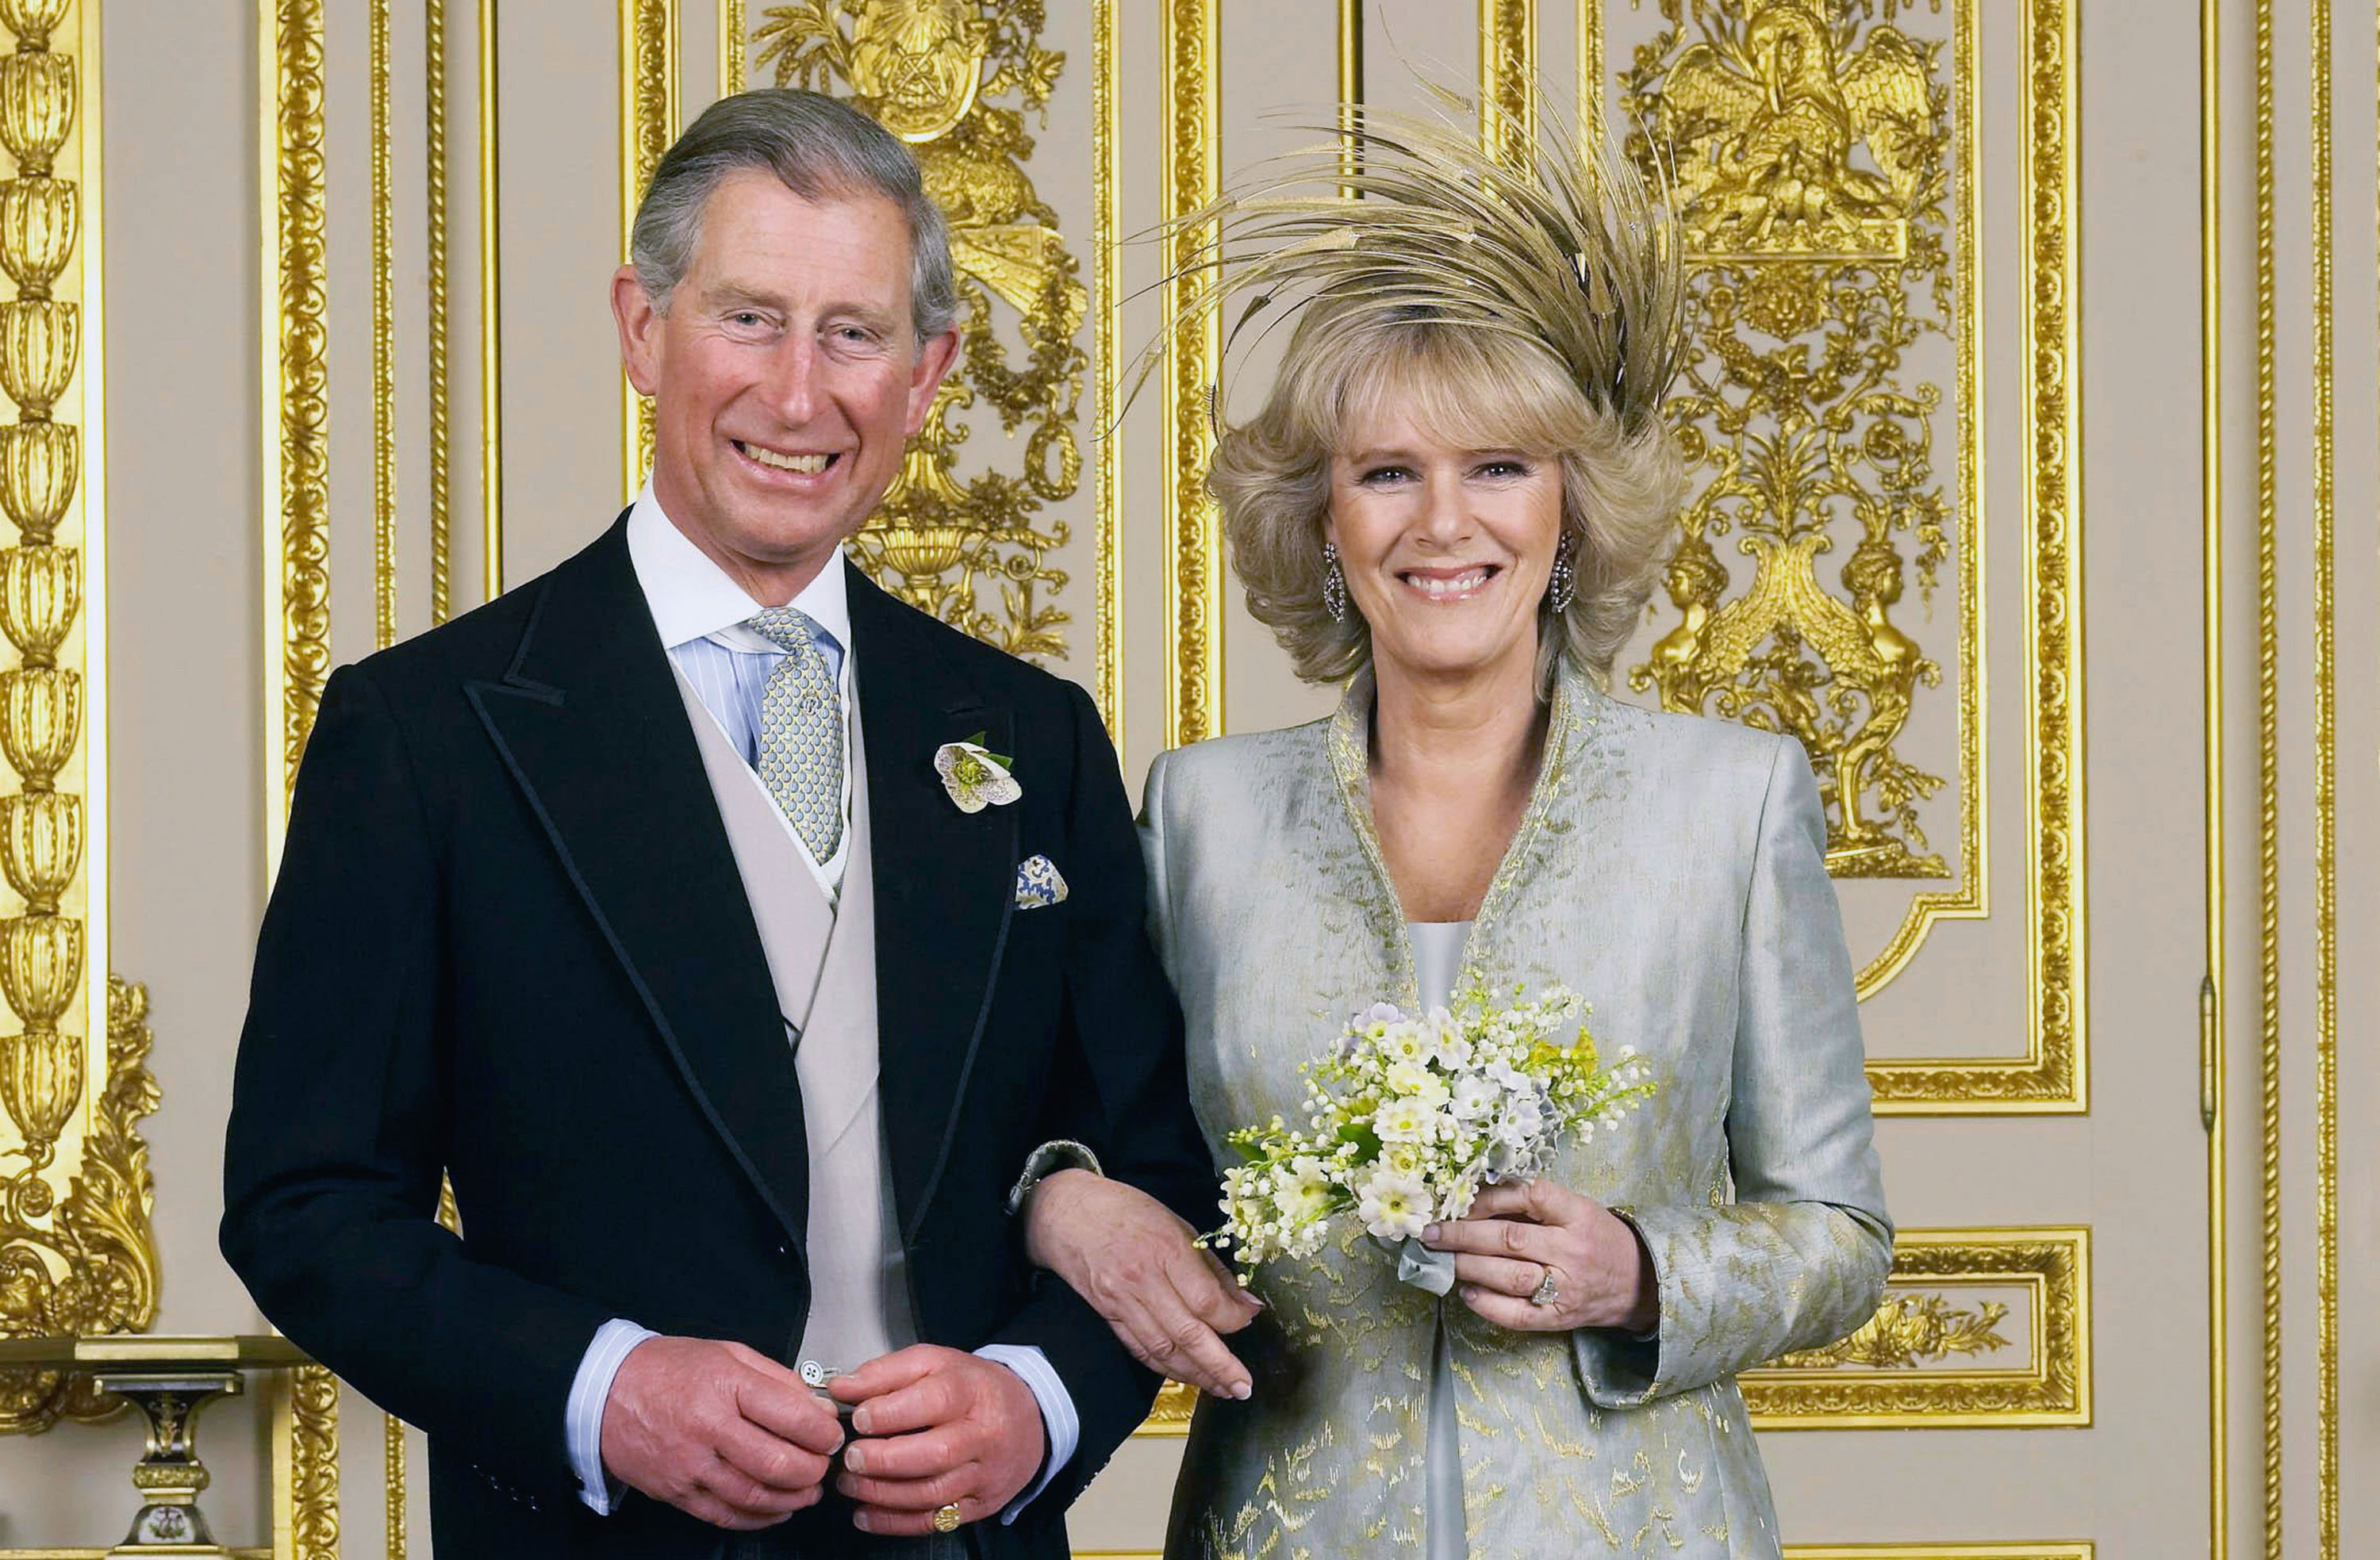 Prince Charles, the Prince of Wales, and his wife Camilla, the Duchess Of Cornwall, pose in the White Drawing Room at Windsor Castle for the Official Wedding photograph following their marriage on April 9, 2005 in Windsor, England. Tim Graham/Getty Images